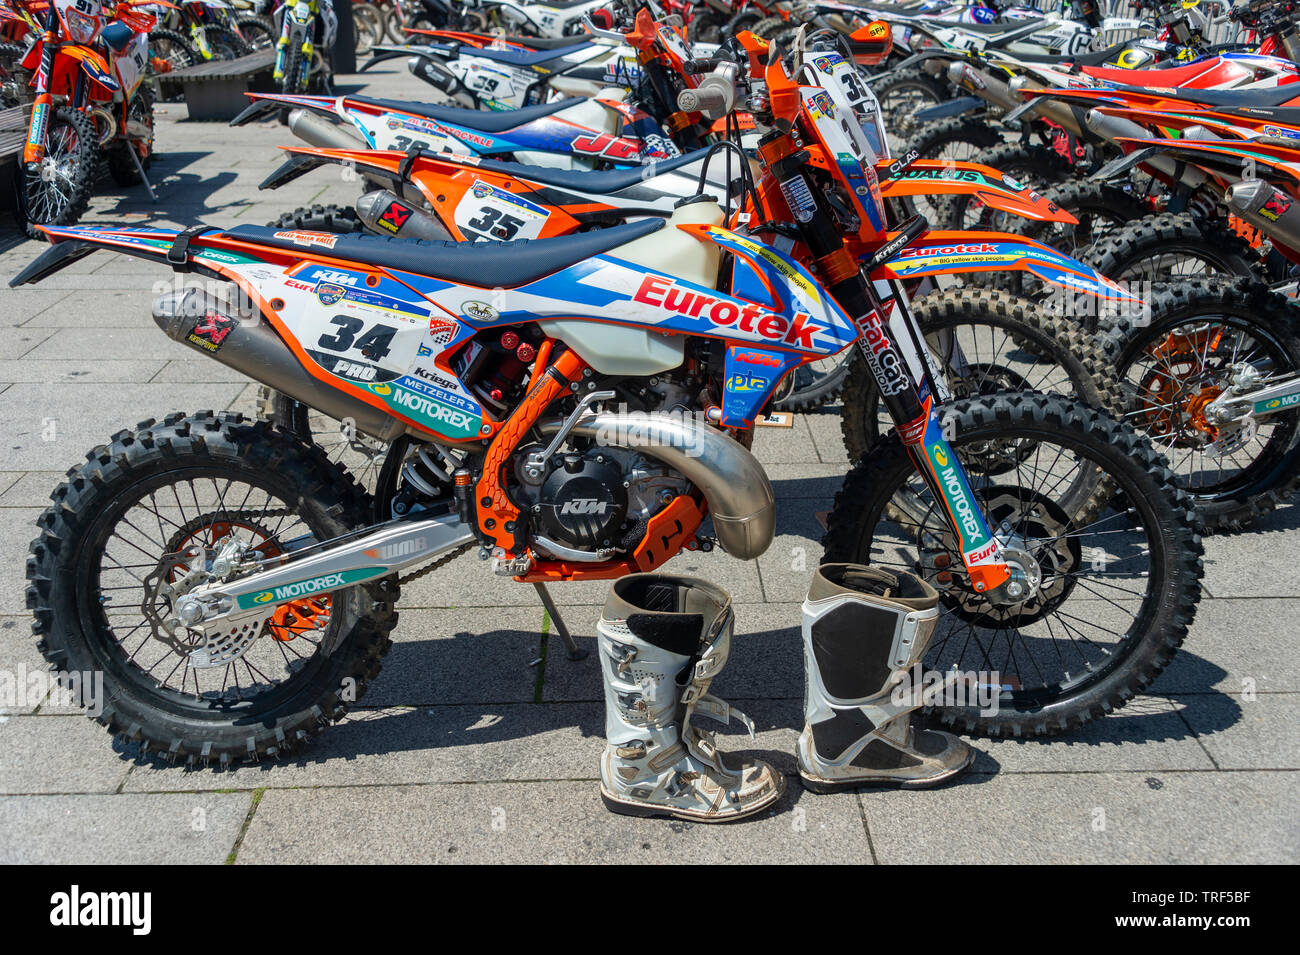 KTM motocross enduro competition​ bikes parked in the paddock at world enduro event Porto, Portugal - Stock Image